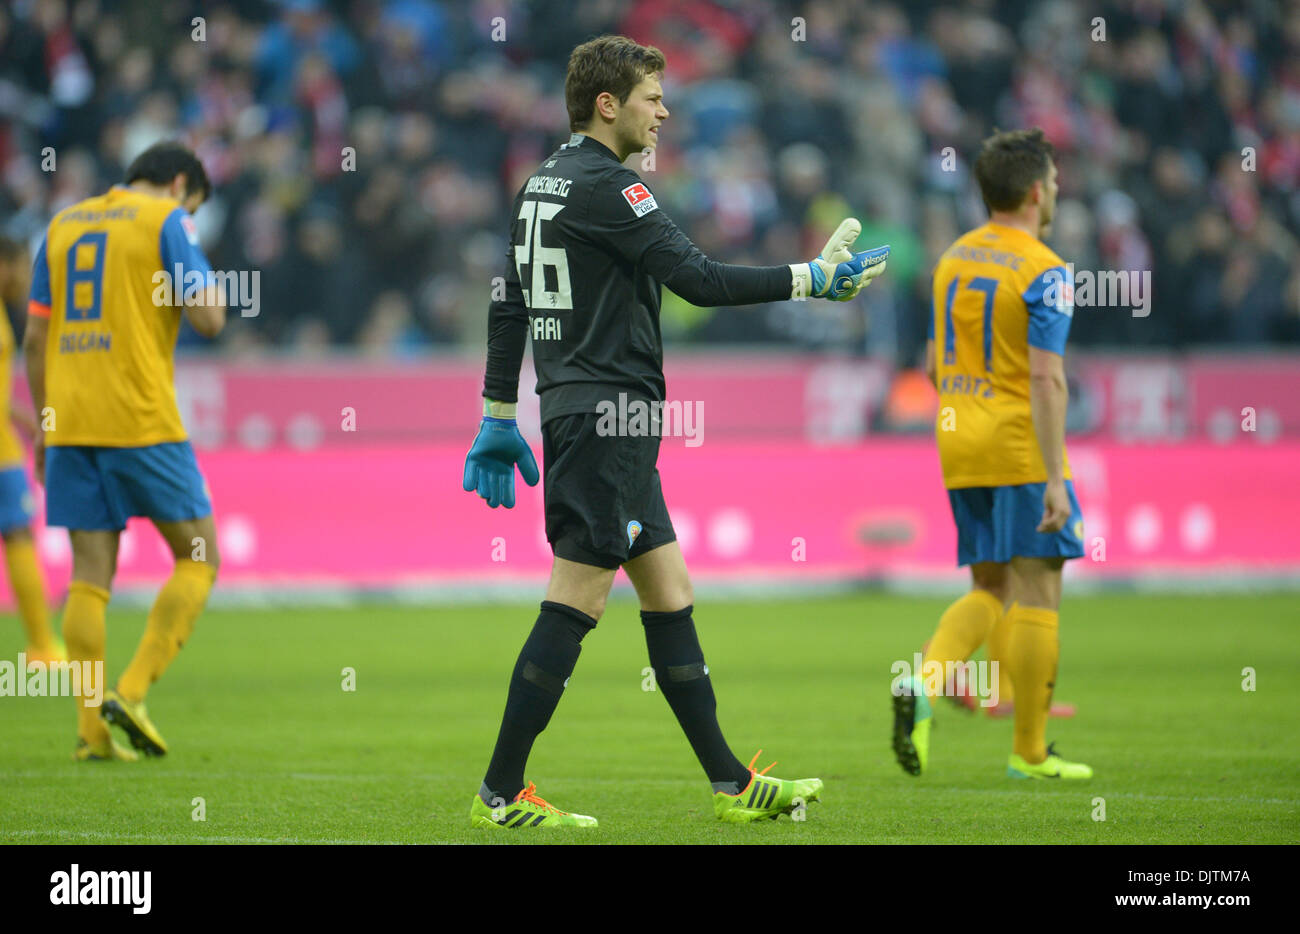 Munich, Germany. 30th Nov, 2013. Braunschweig's Deniz Dogan (L), goalkeeper Daniel Davari (C) and Kevin Kratz reacts after Munich's 2-0 goal during the German Bundesliga match between FC Bayern Munich and Eintracht Braunschweig at Allianz Arena in Munich, Germany, 30 November 2013. Photo: ANDREAS GEBERT (ATTENTION: Due to the accreditation guidelines, the DFL only permits the publication and utilisation of up to 15 pictures per match on the internet and in online media during the match.)/dpa/Alamy Live News - Stock Image